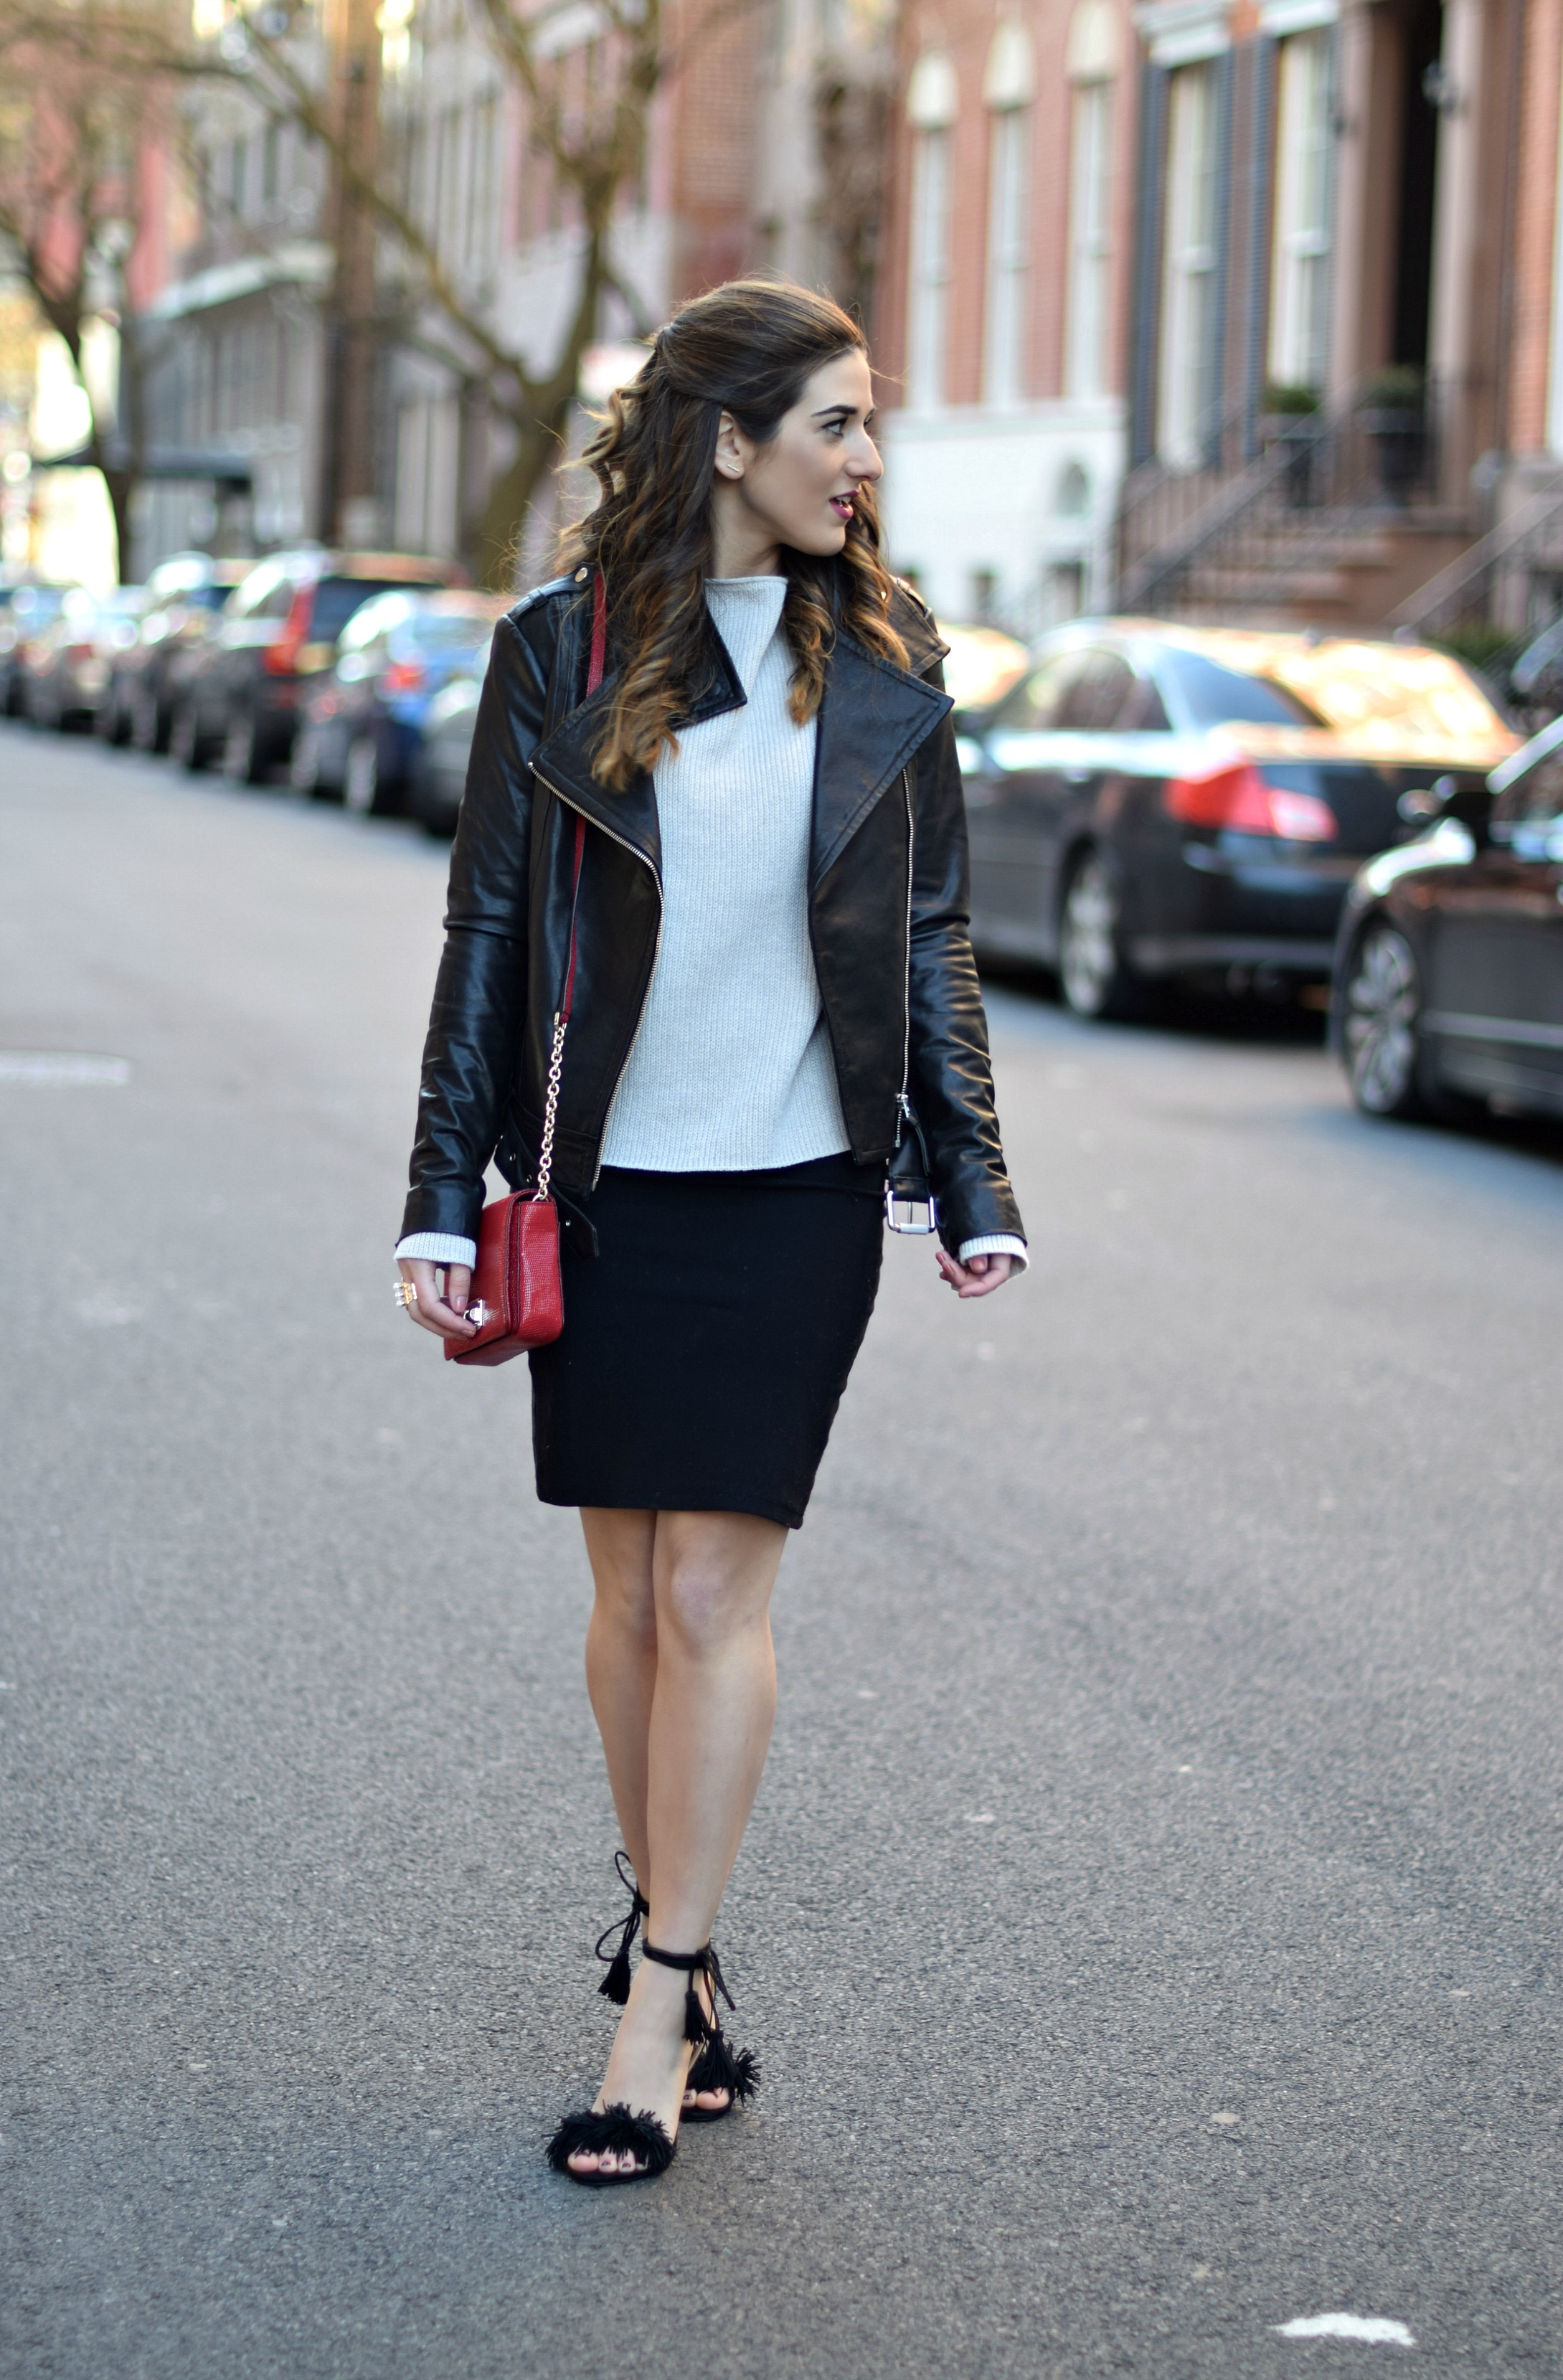 Ivanka Trump Fringe Sandals Mackage Moto Jacket Louboutins & Love Fashion Blog Esther Santer NYC Street Style Blogger Outfit OOTD Leather Summer Spring Designer Clothes Shop Model Photoshoot Helmut Lang Sweater Skirt Pretty Beautiful Shoes Girl Women.jpg